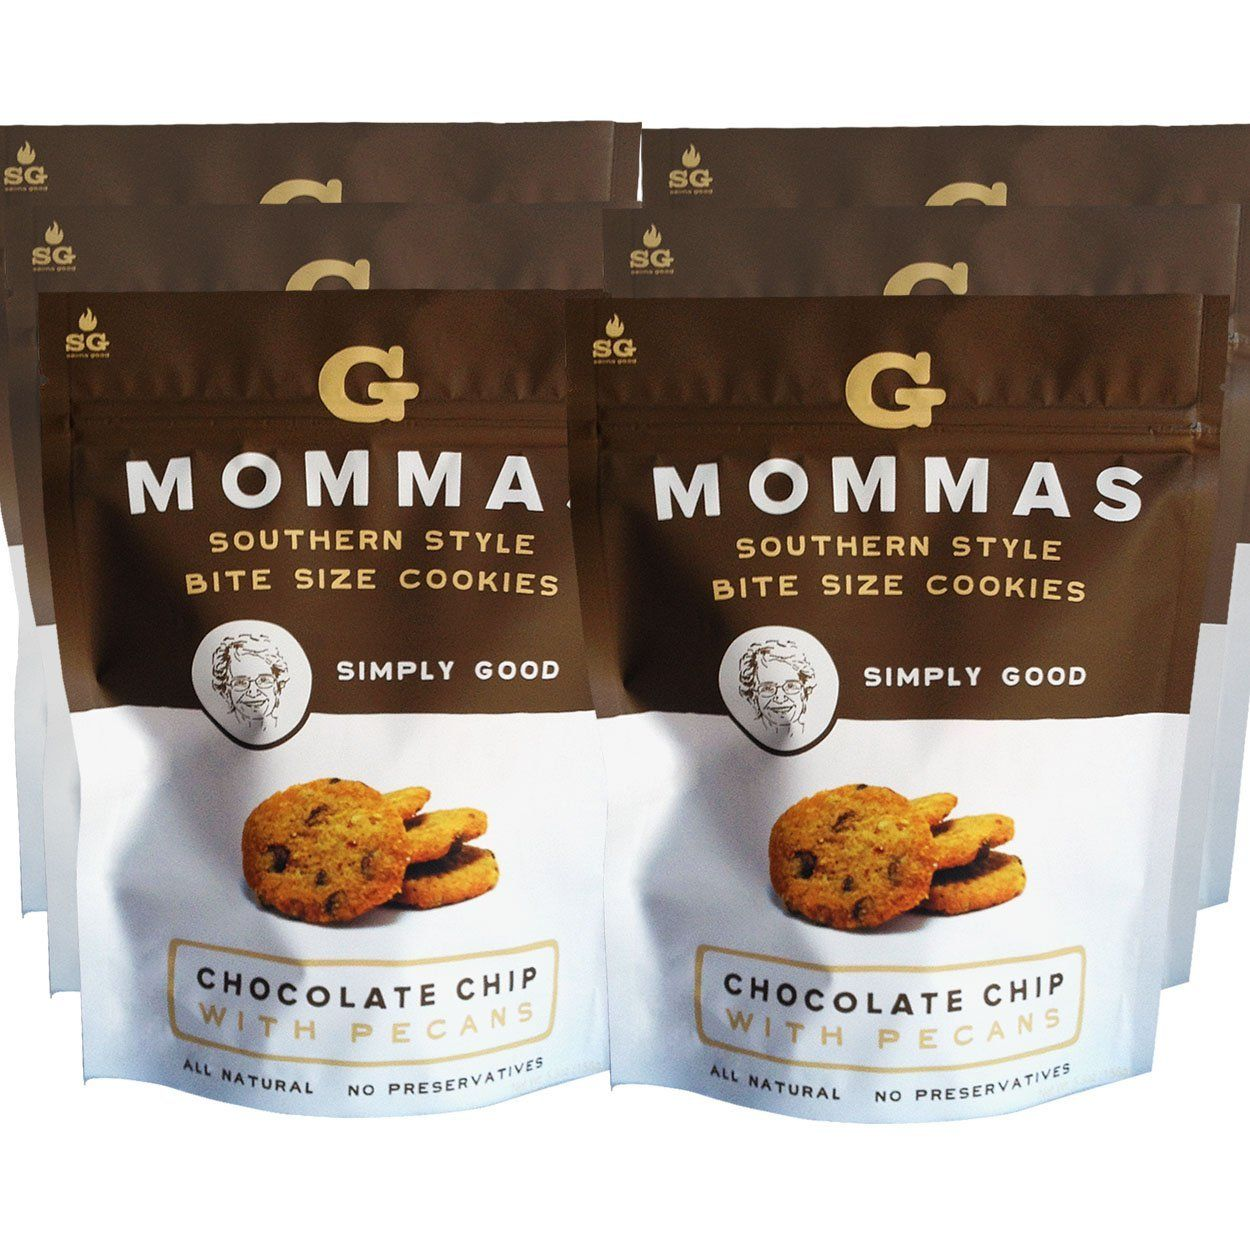 Chocolate Chip Cookies with Pecan - G Mommas Homemade Cookies - 6 Pack ** Find out more about the great product at the image link.